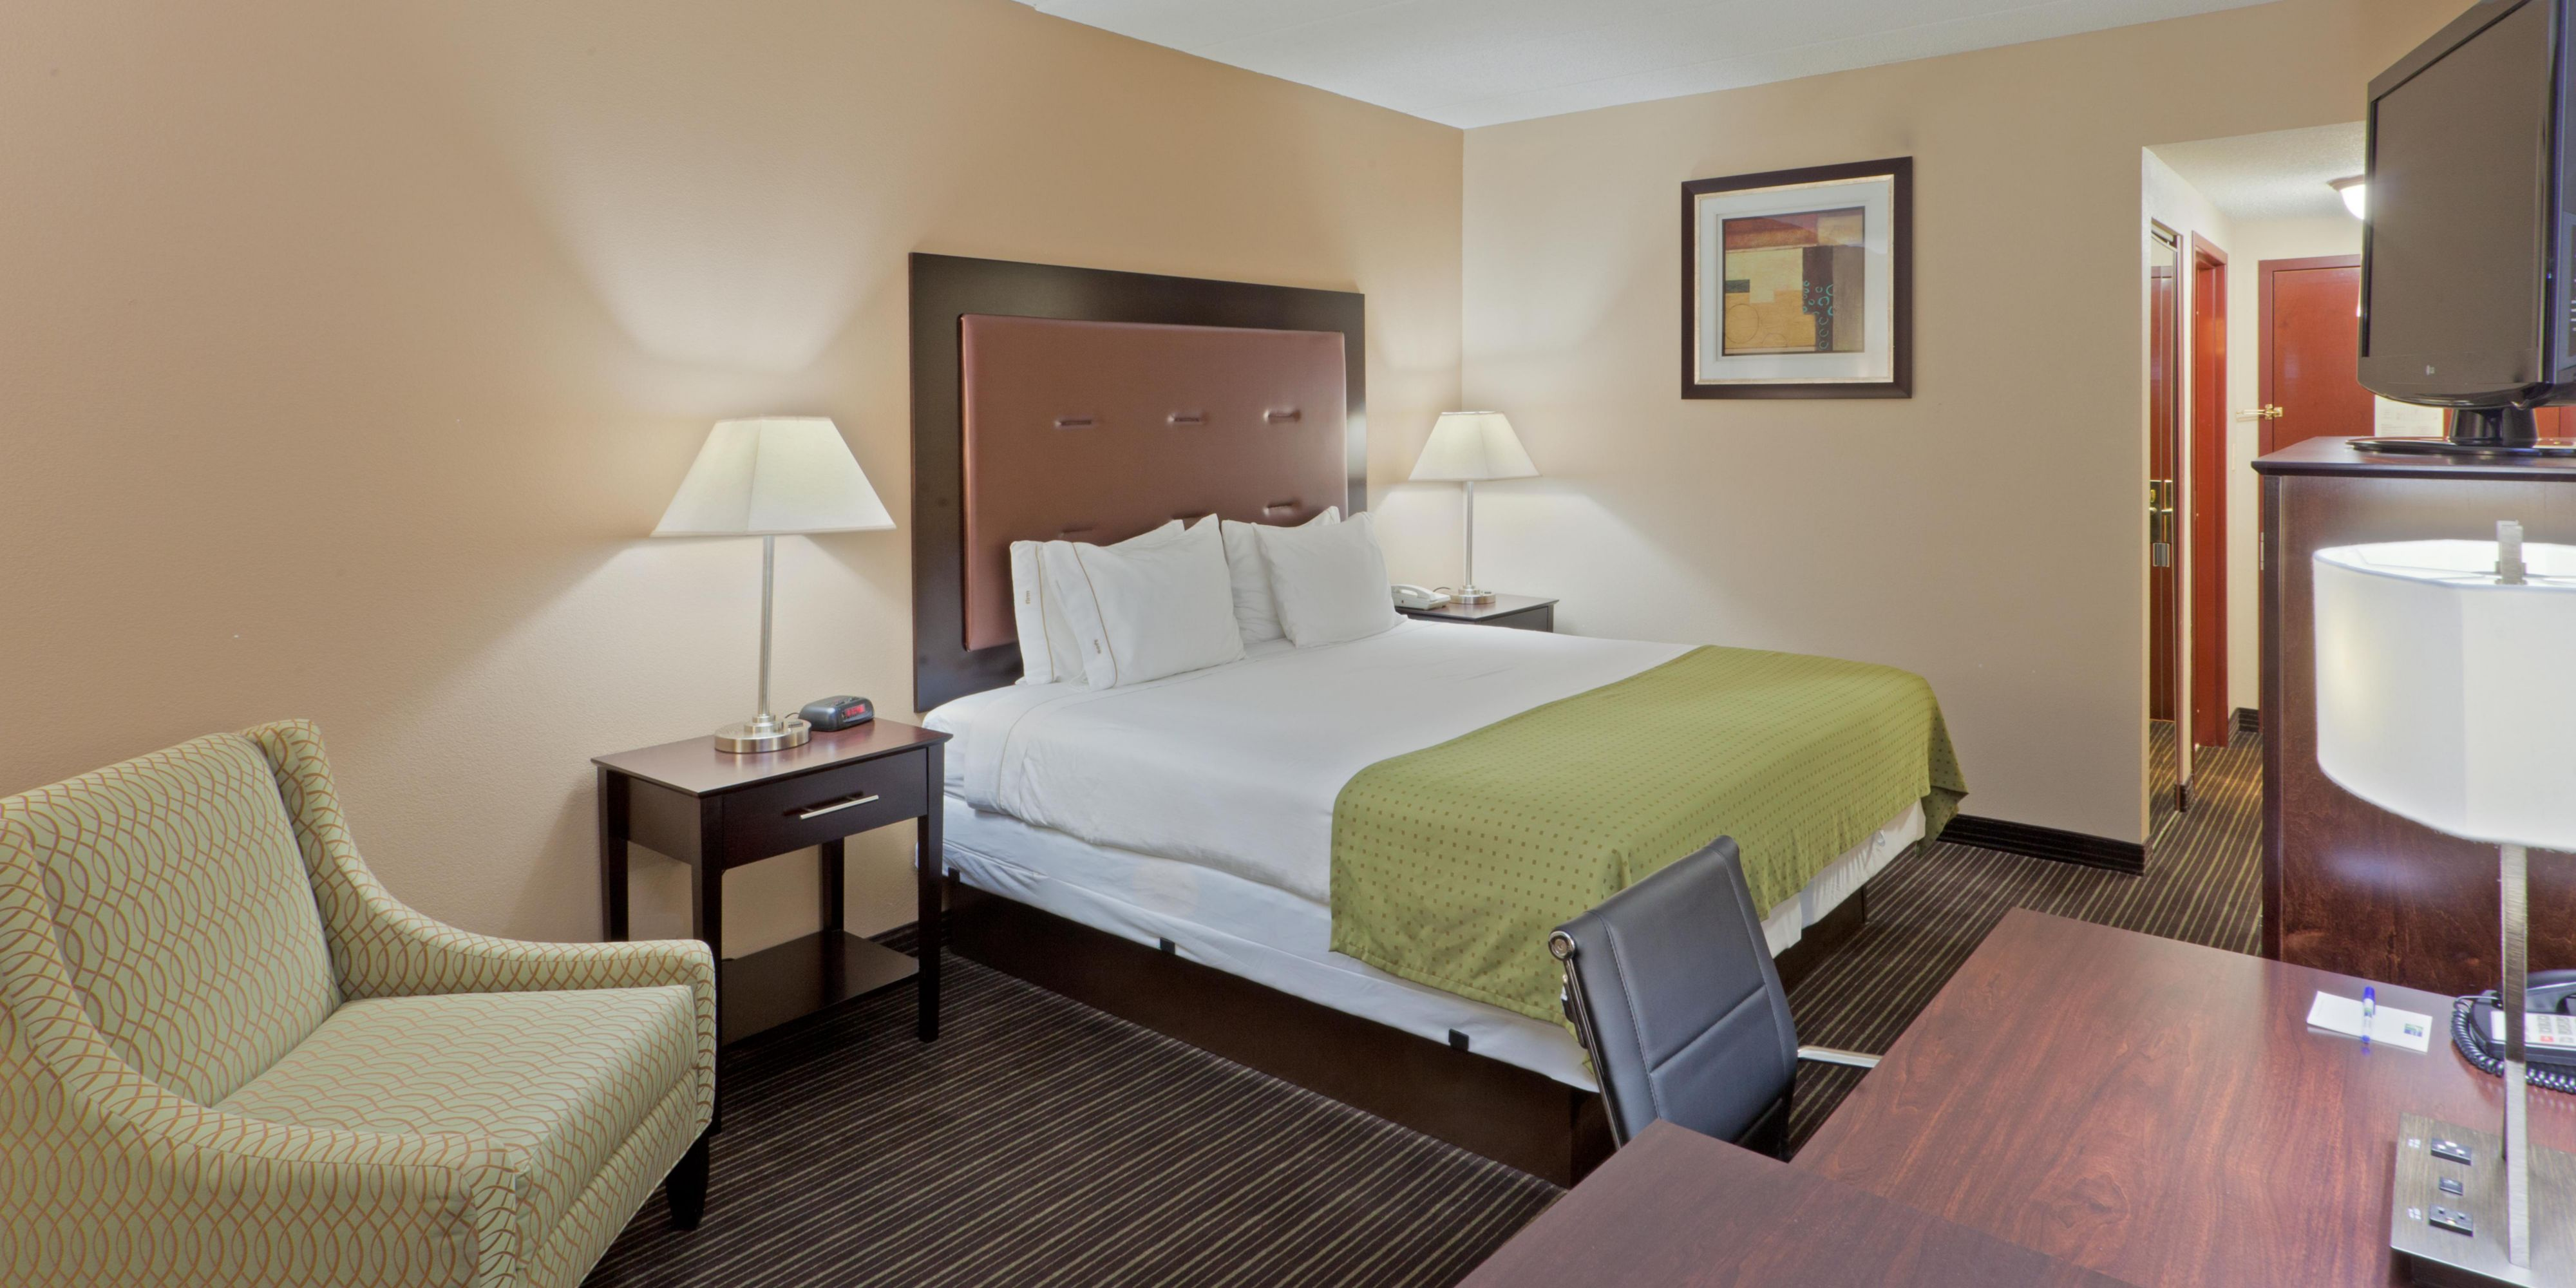 Hotel Rooms Charleston Wv 2018 World 39 S Best Hotels